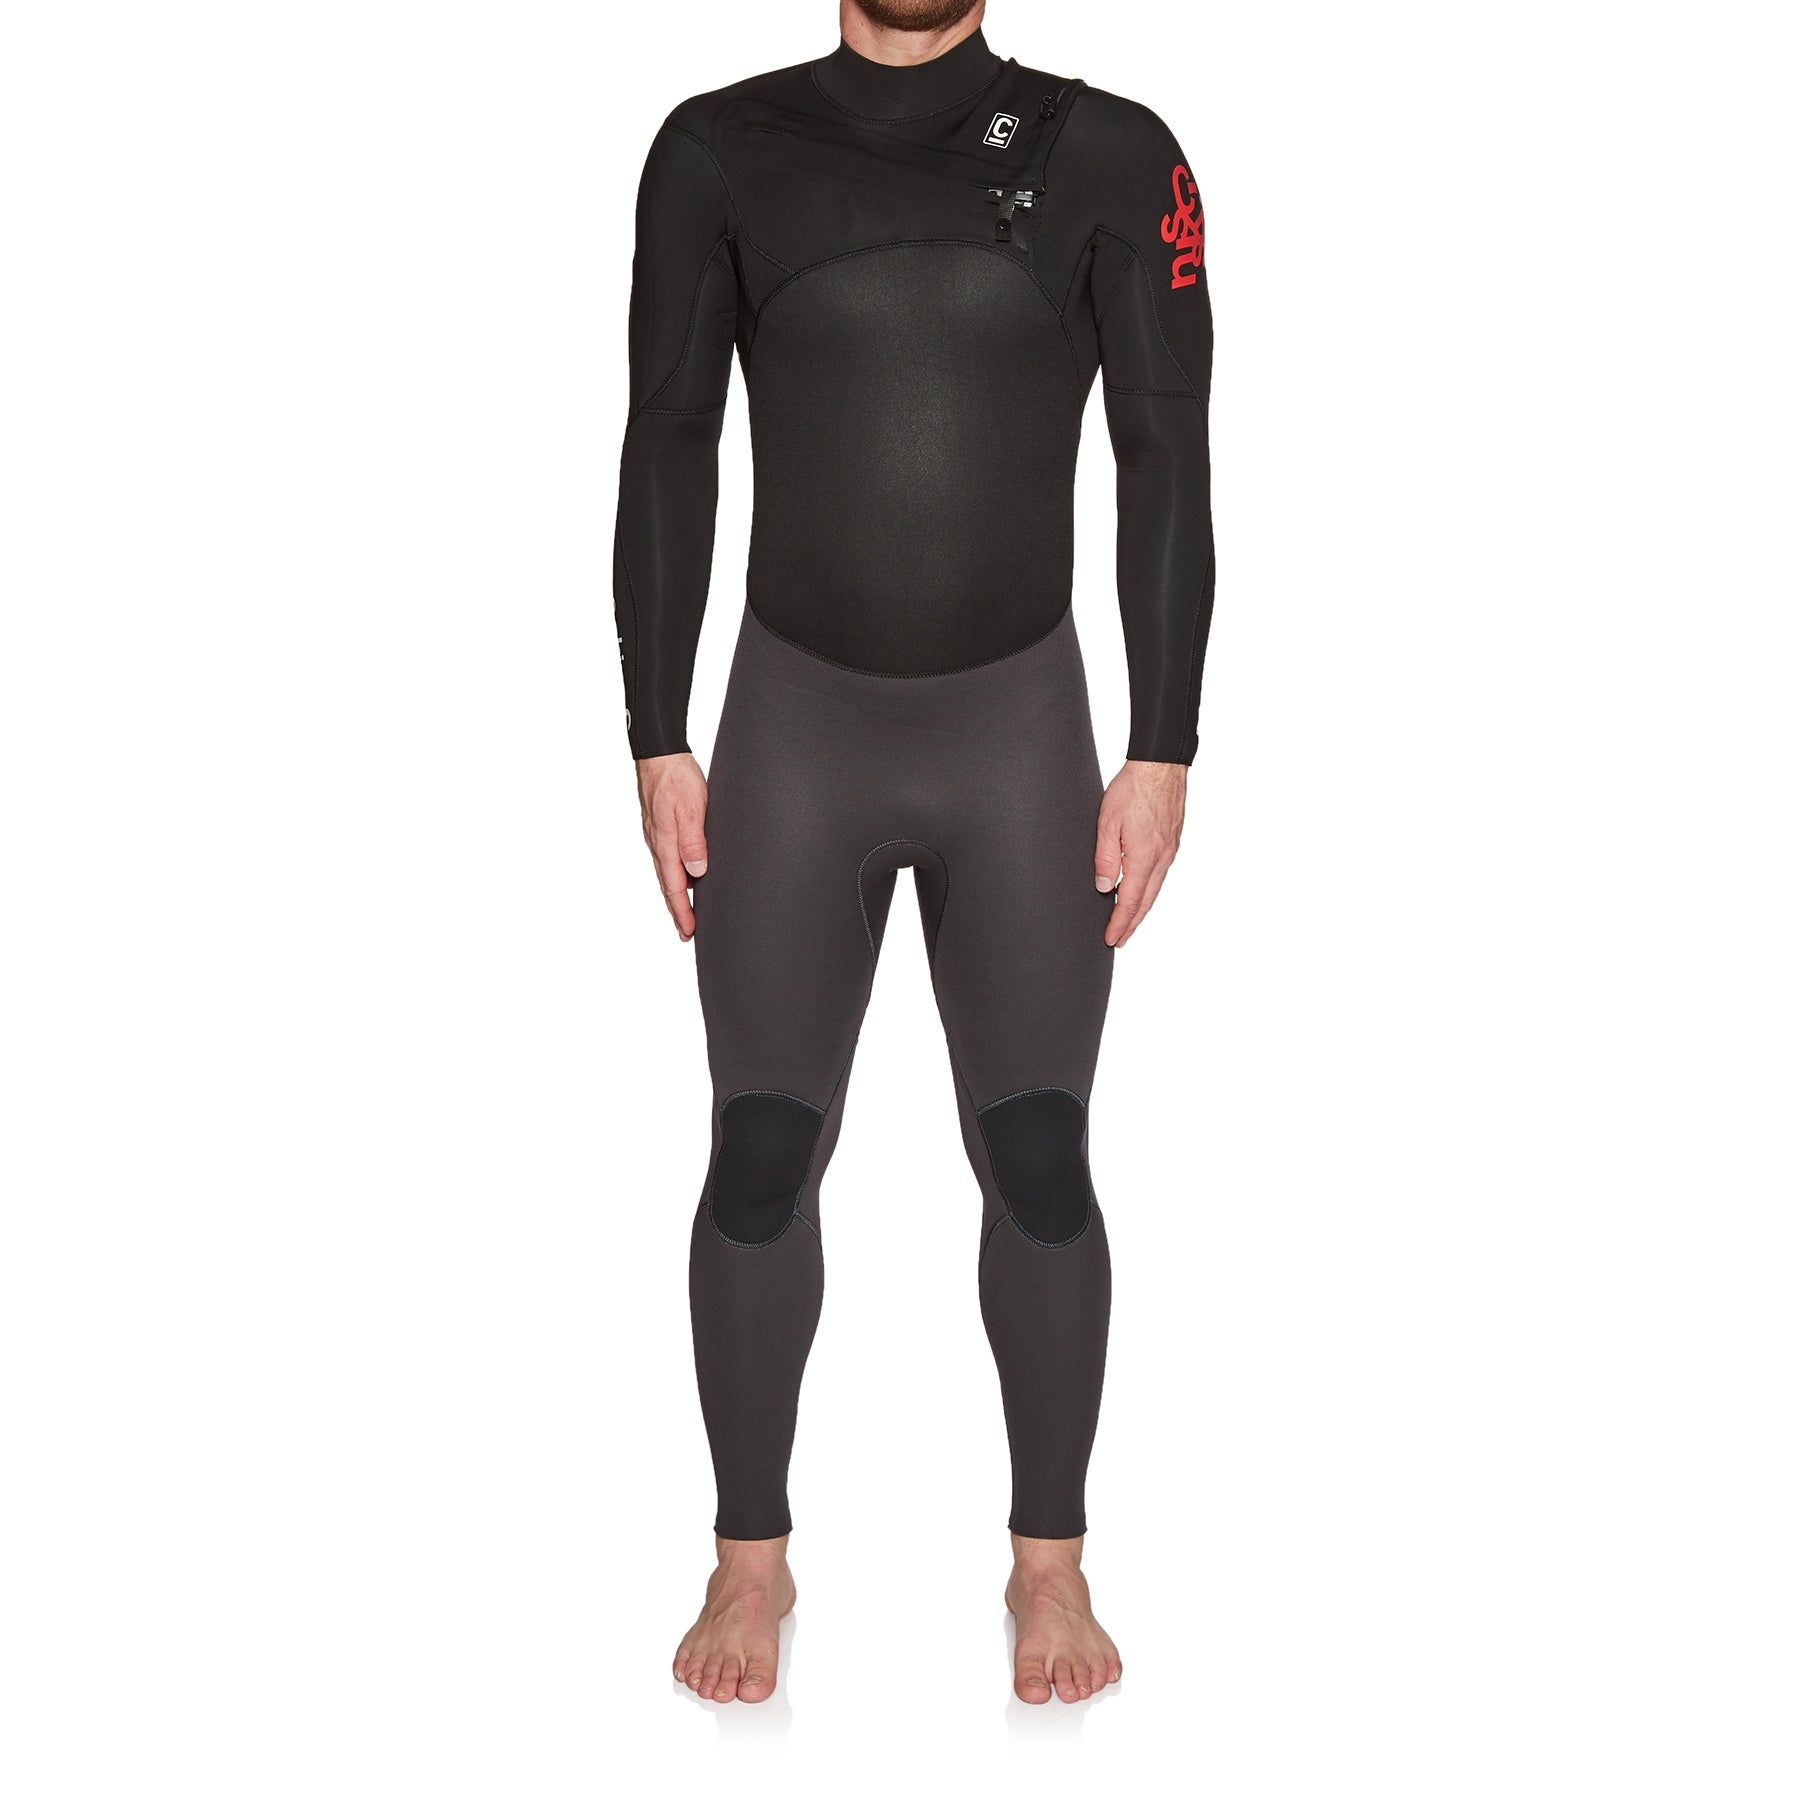 C-Skins Legend 4/3mm 2019 Chest Zip Wetsuit